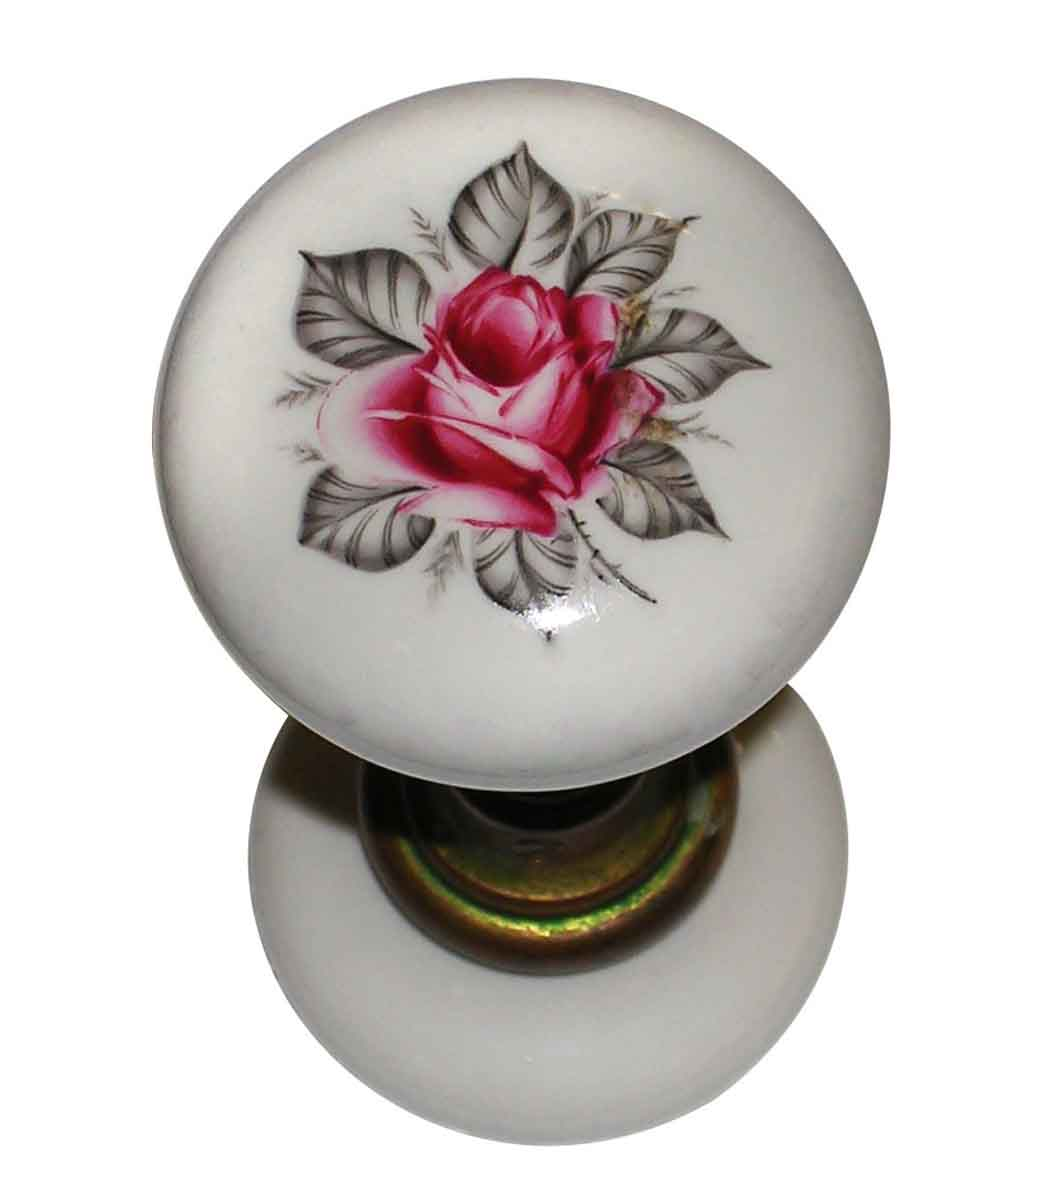 Porcelain Door Knob with Rose Painting